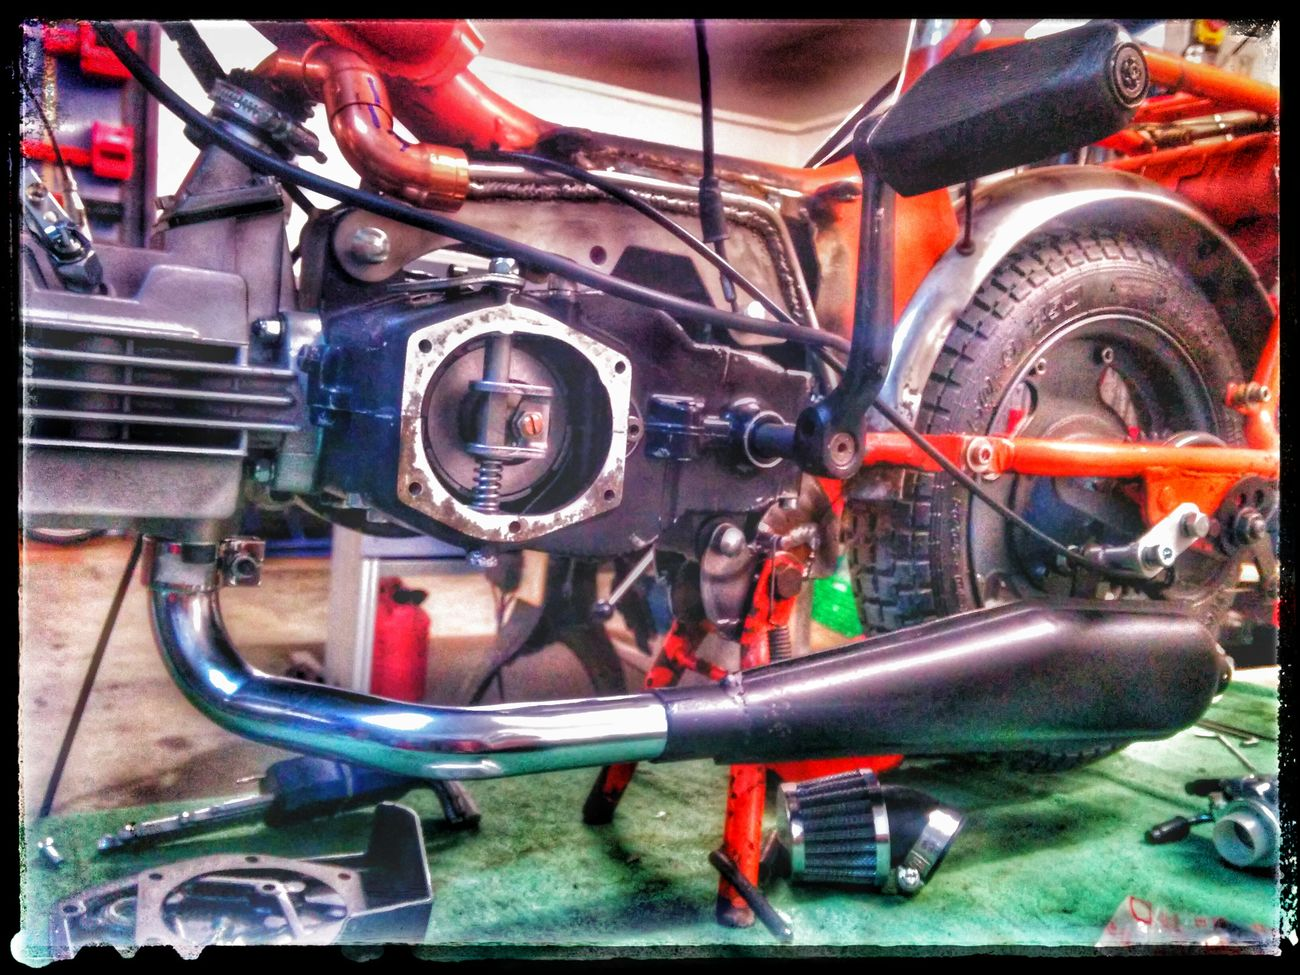 www.feinmechanik-rosenheim.de DKW Dkw Motorcycle 1970s Mofa Nsu Sachs Uncompleted Restauration Restauration First Eyeem Photo Oldtimer♥ Oldtimer Love Oldtimer Or What?! Oldtimer